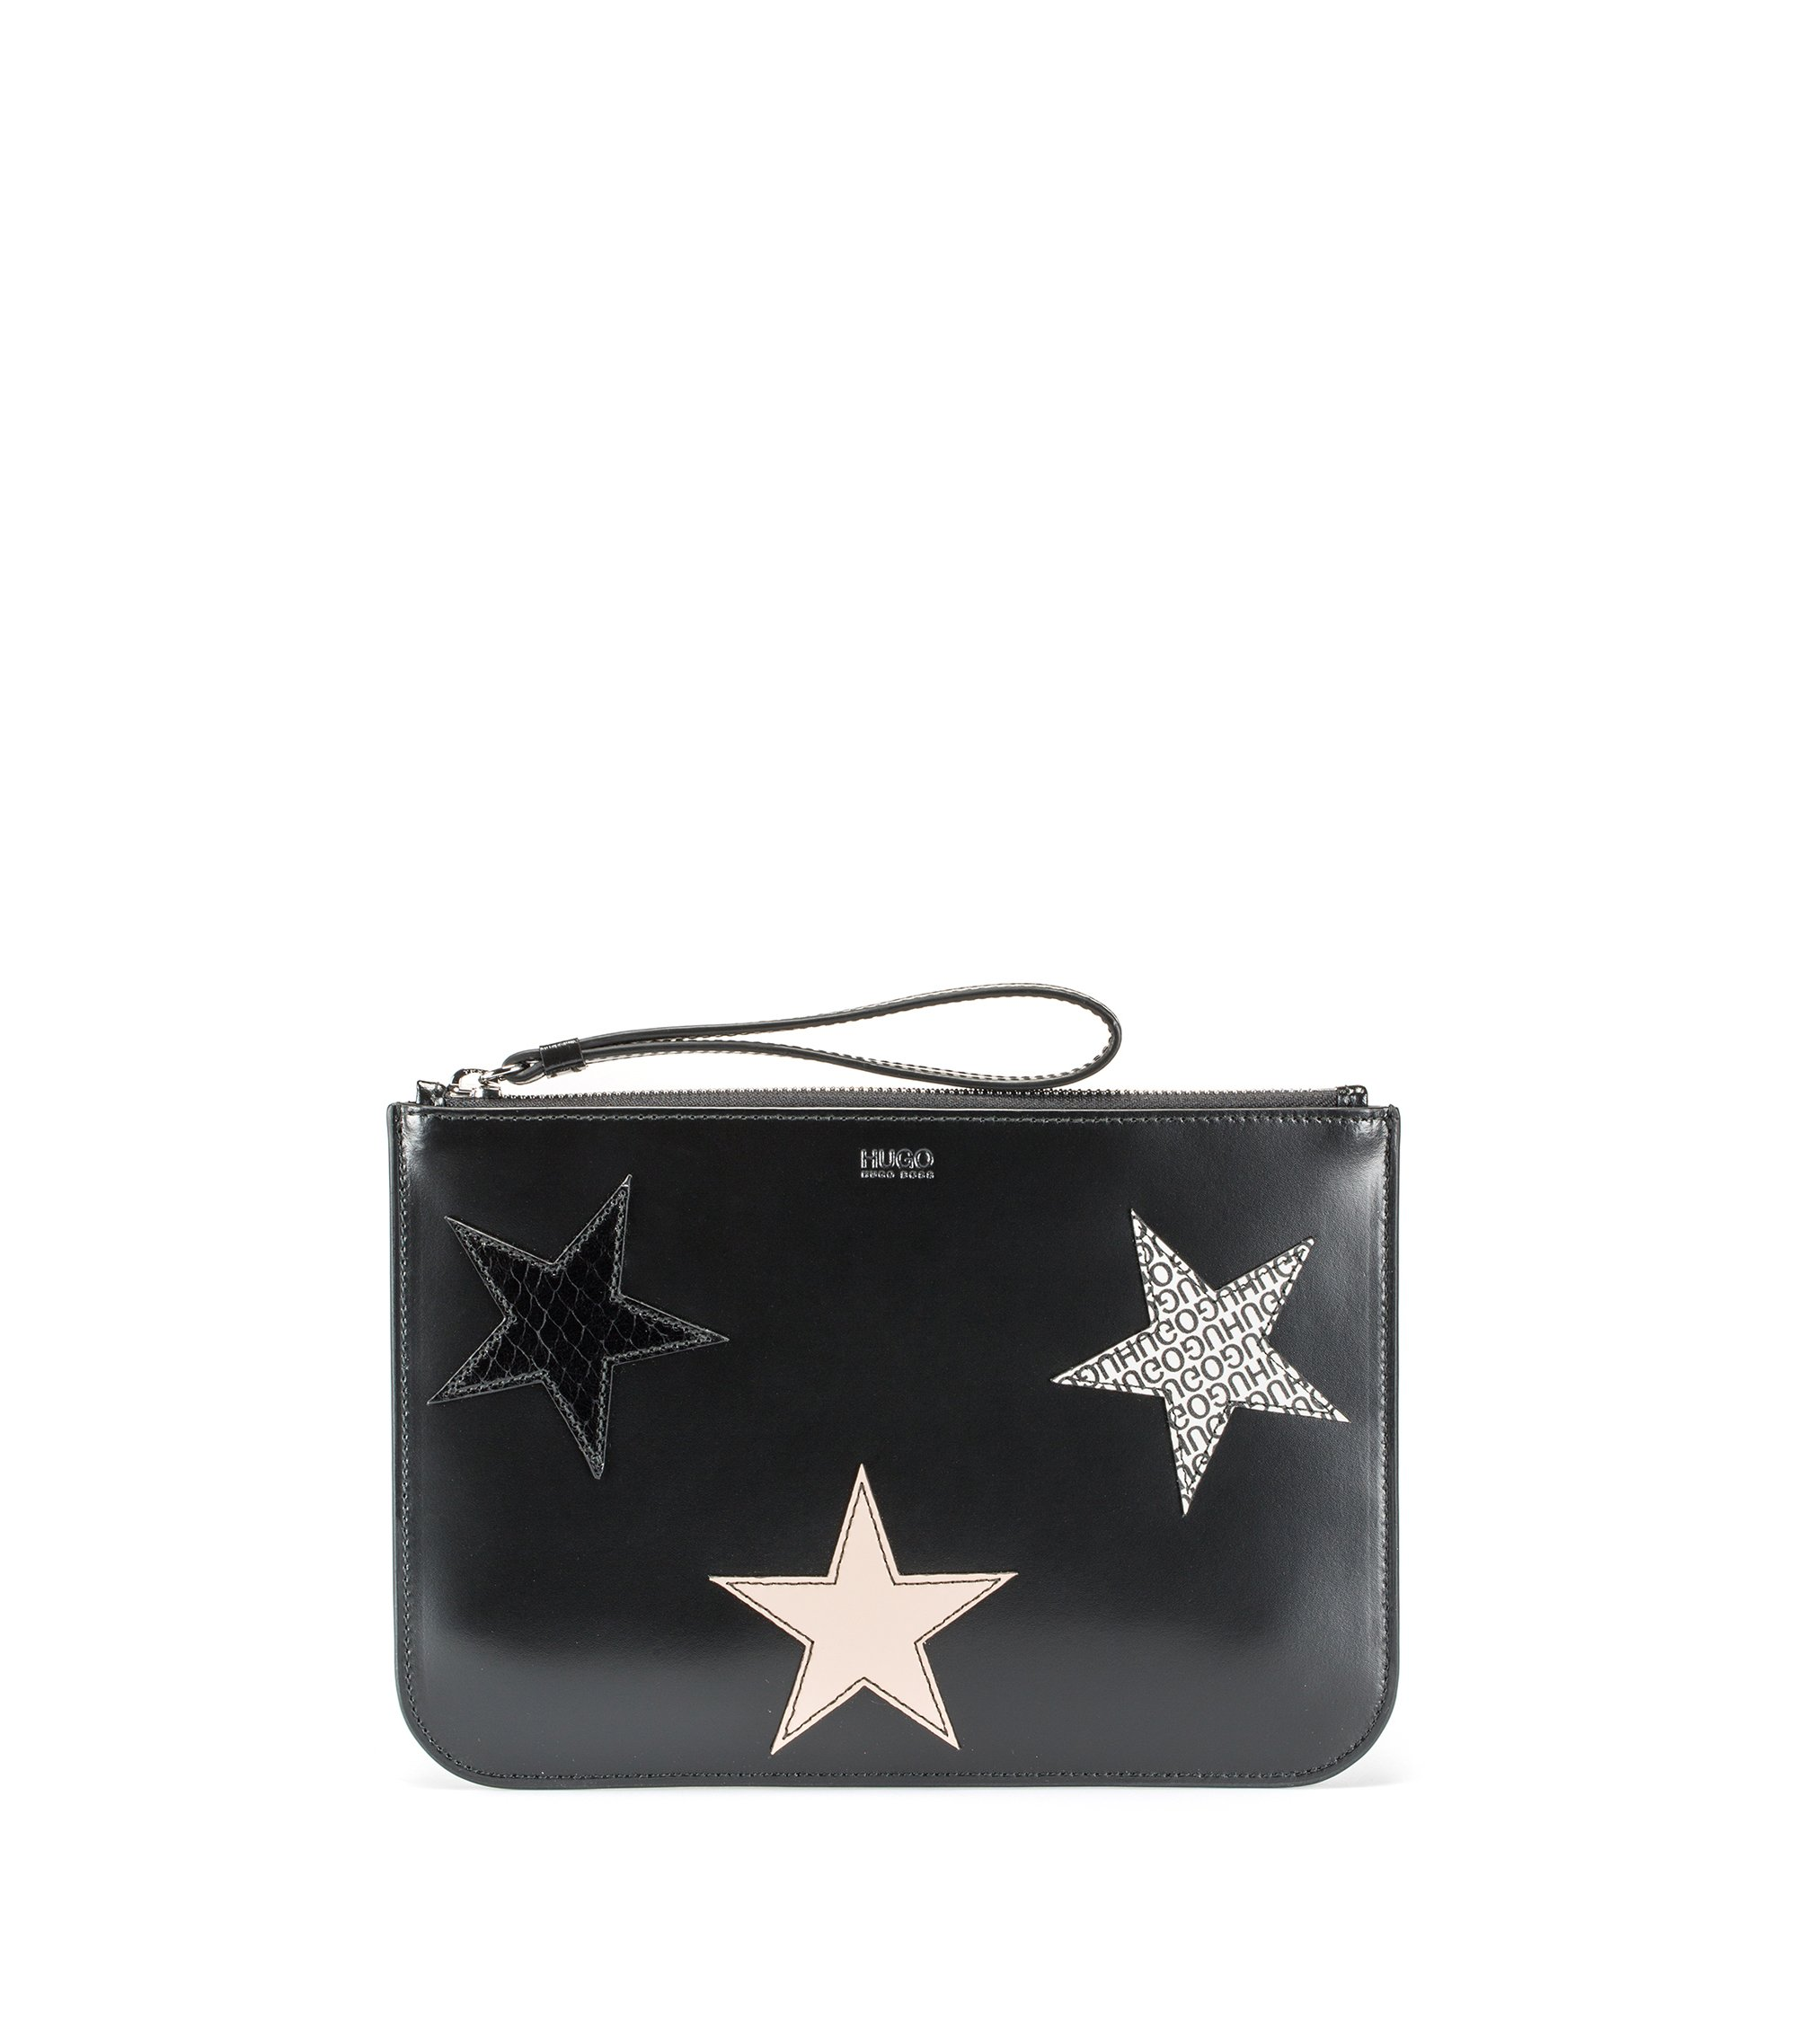 Leather clutch bag with calf-leather star appliqués, Schwarz